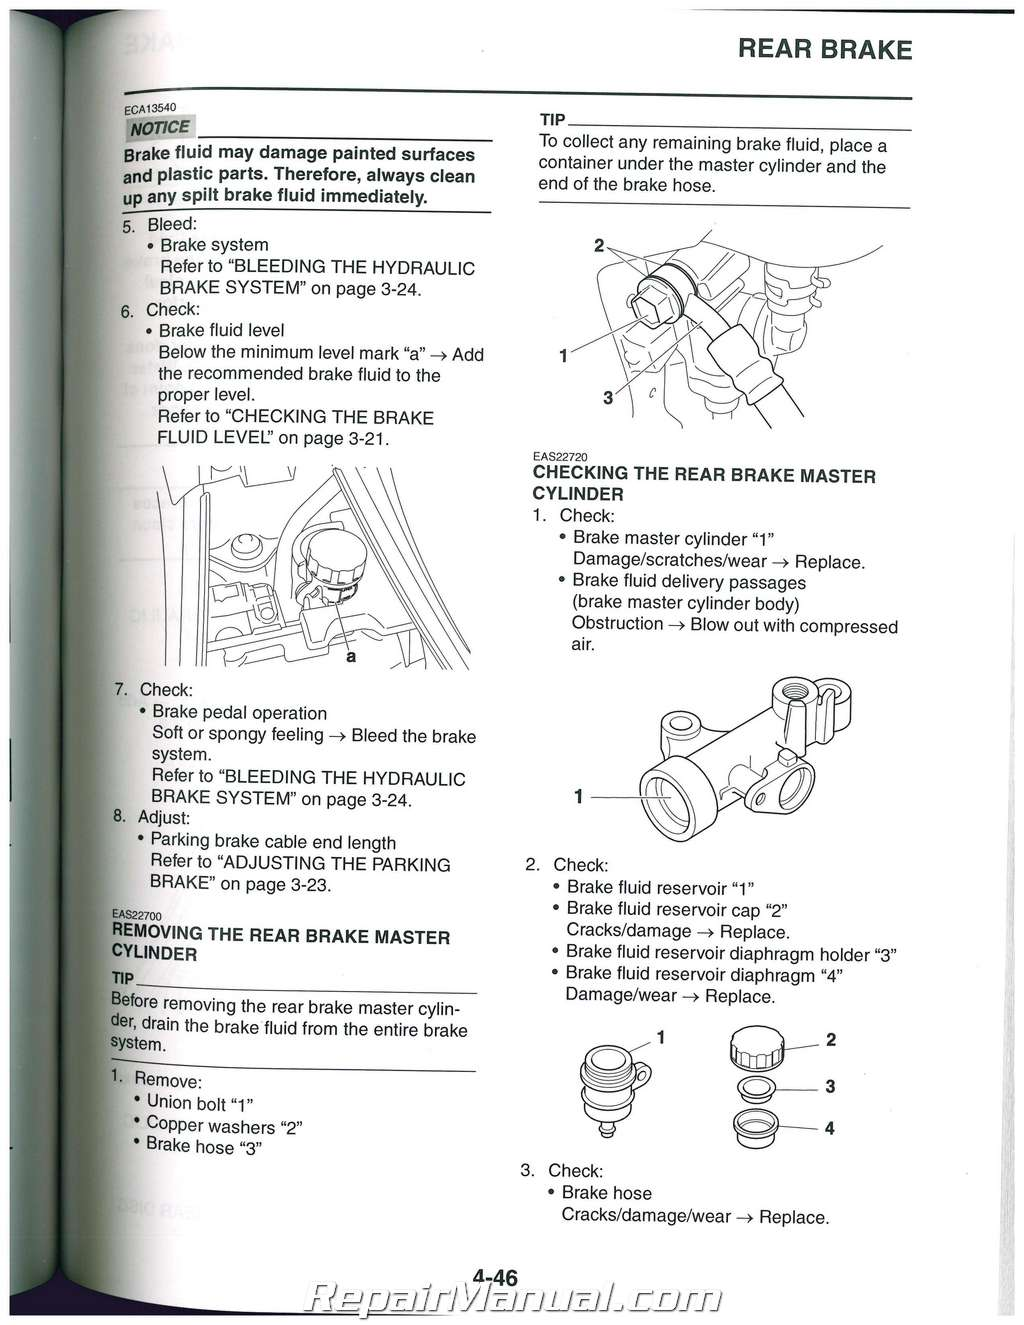 Yamaha Yfz 450 Factory Service Manual